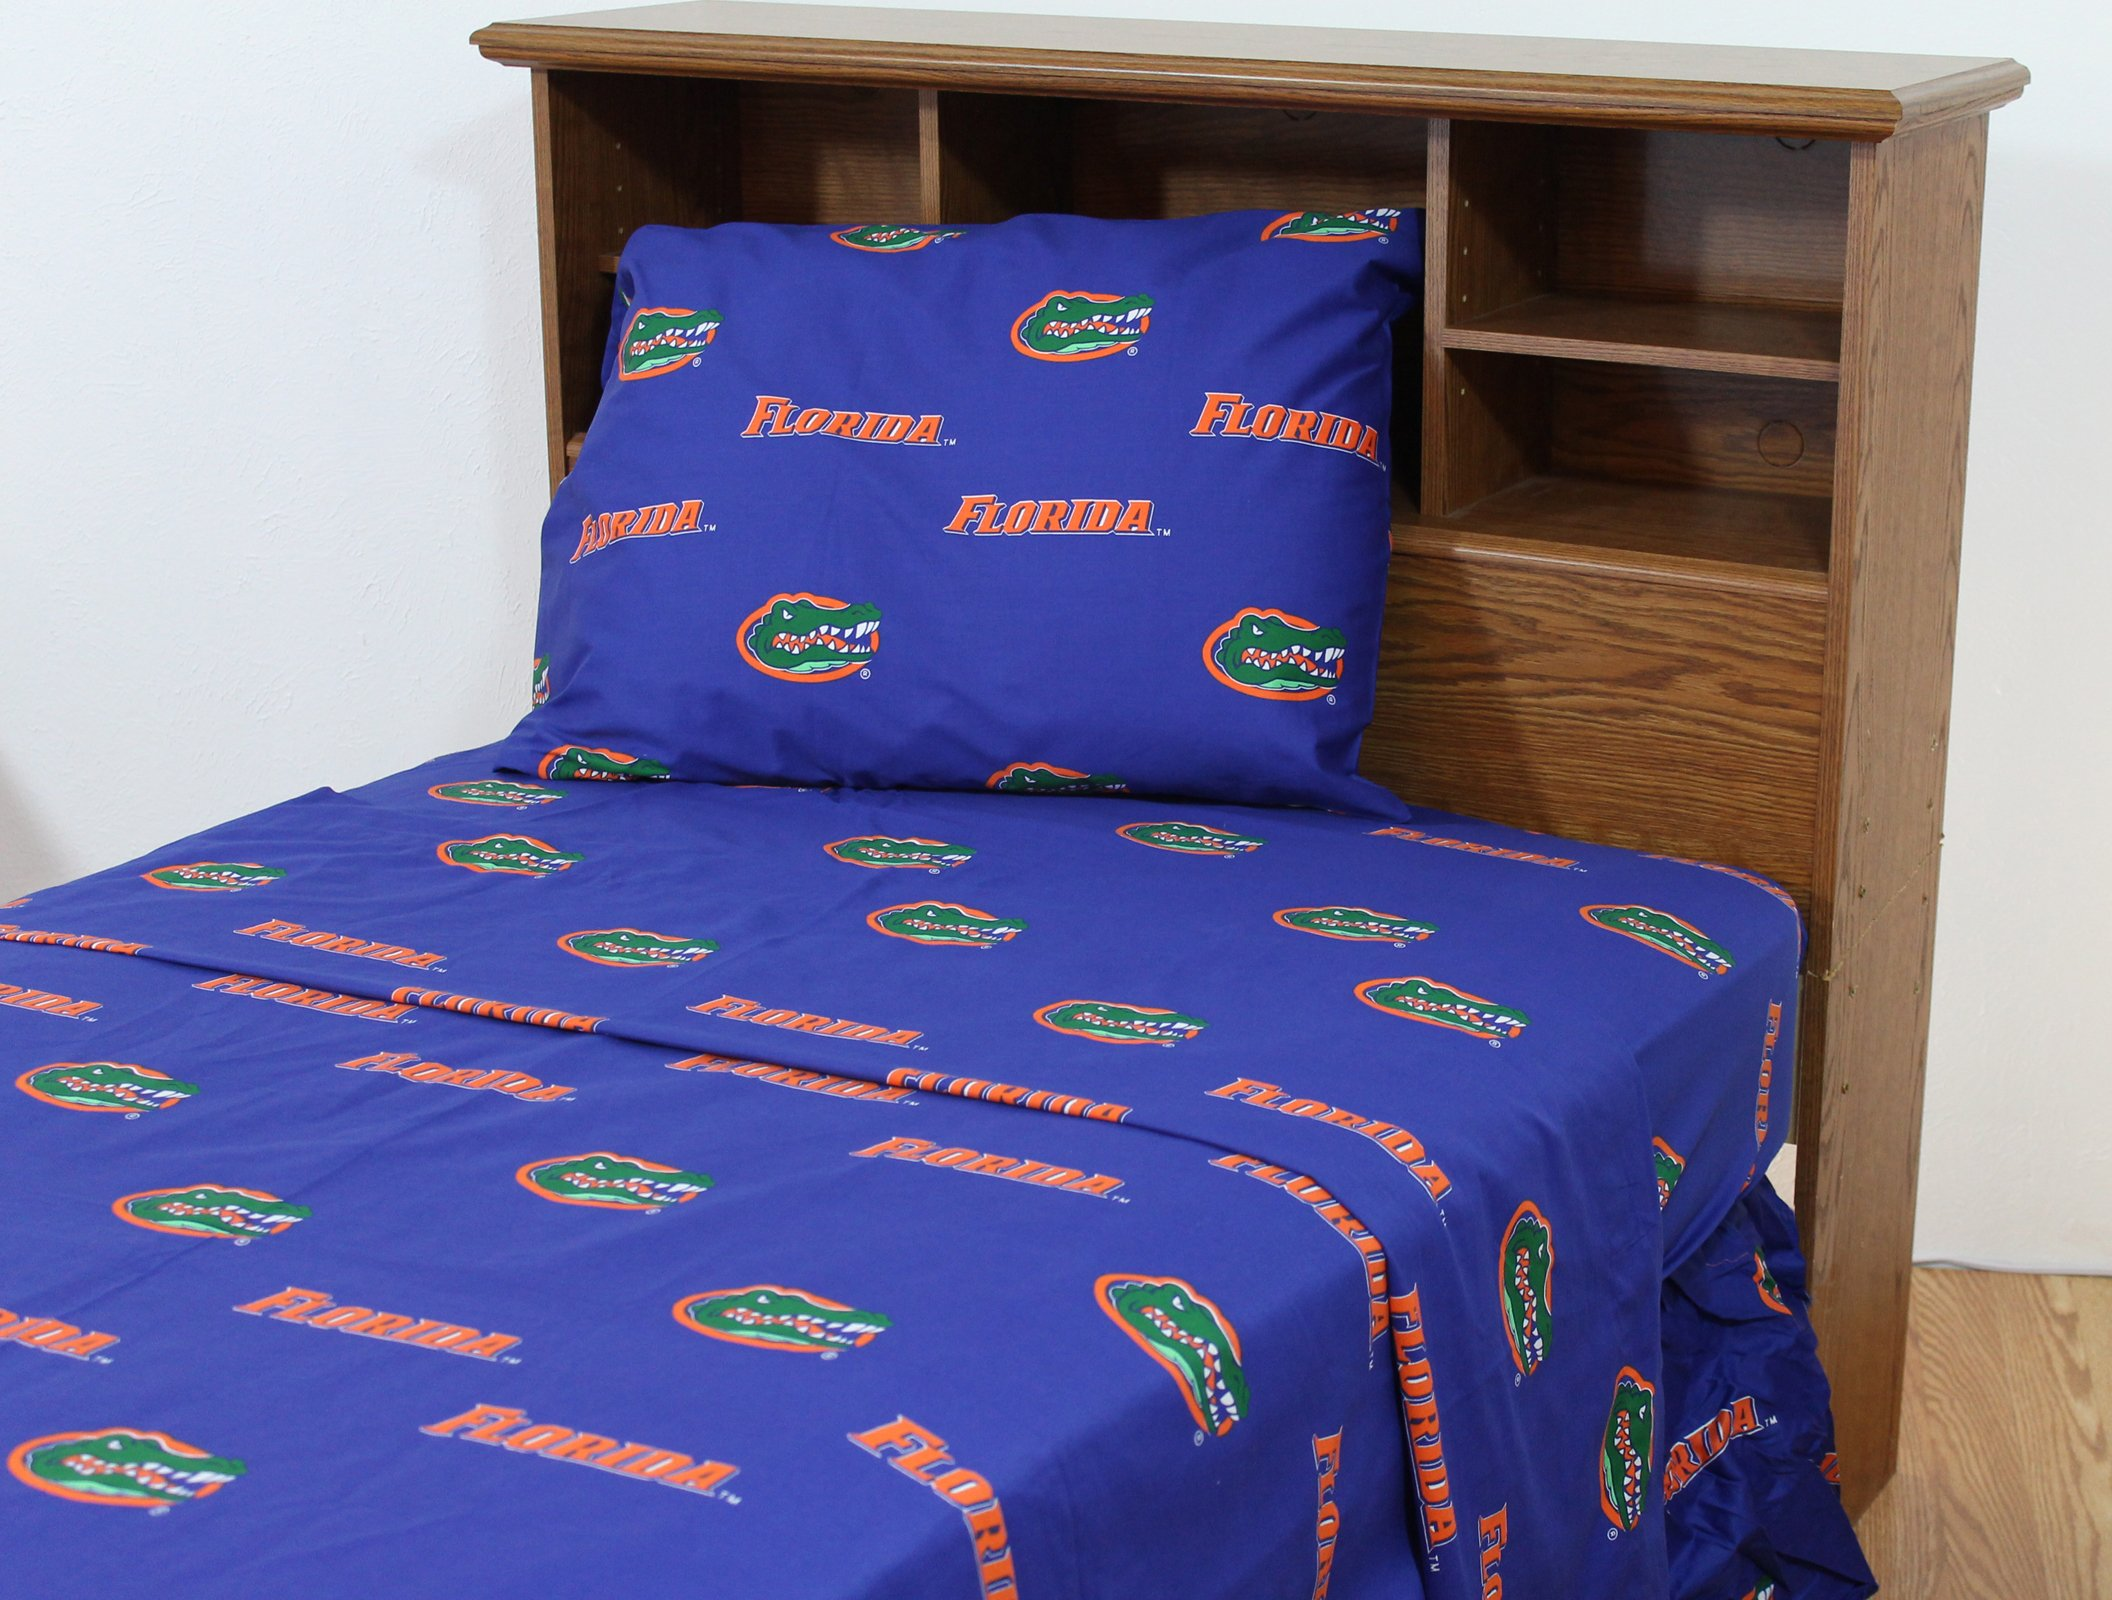 College Covers Florida Gators Printed Solid Sheet Set, Full by College Covers